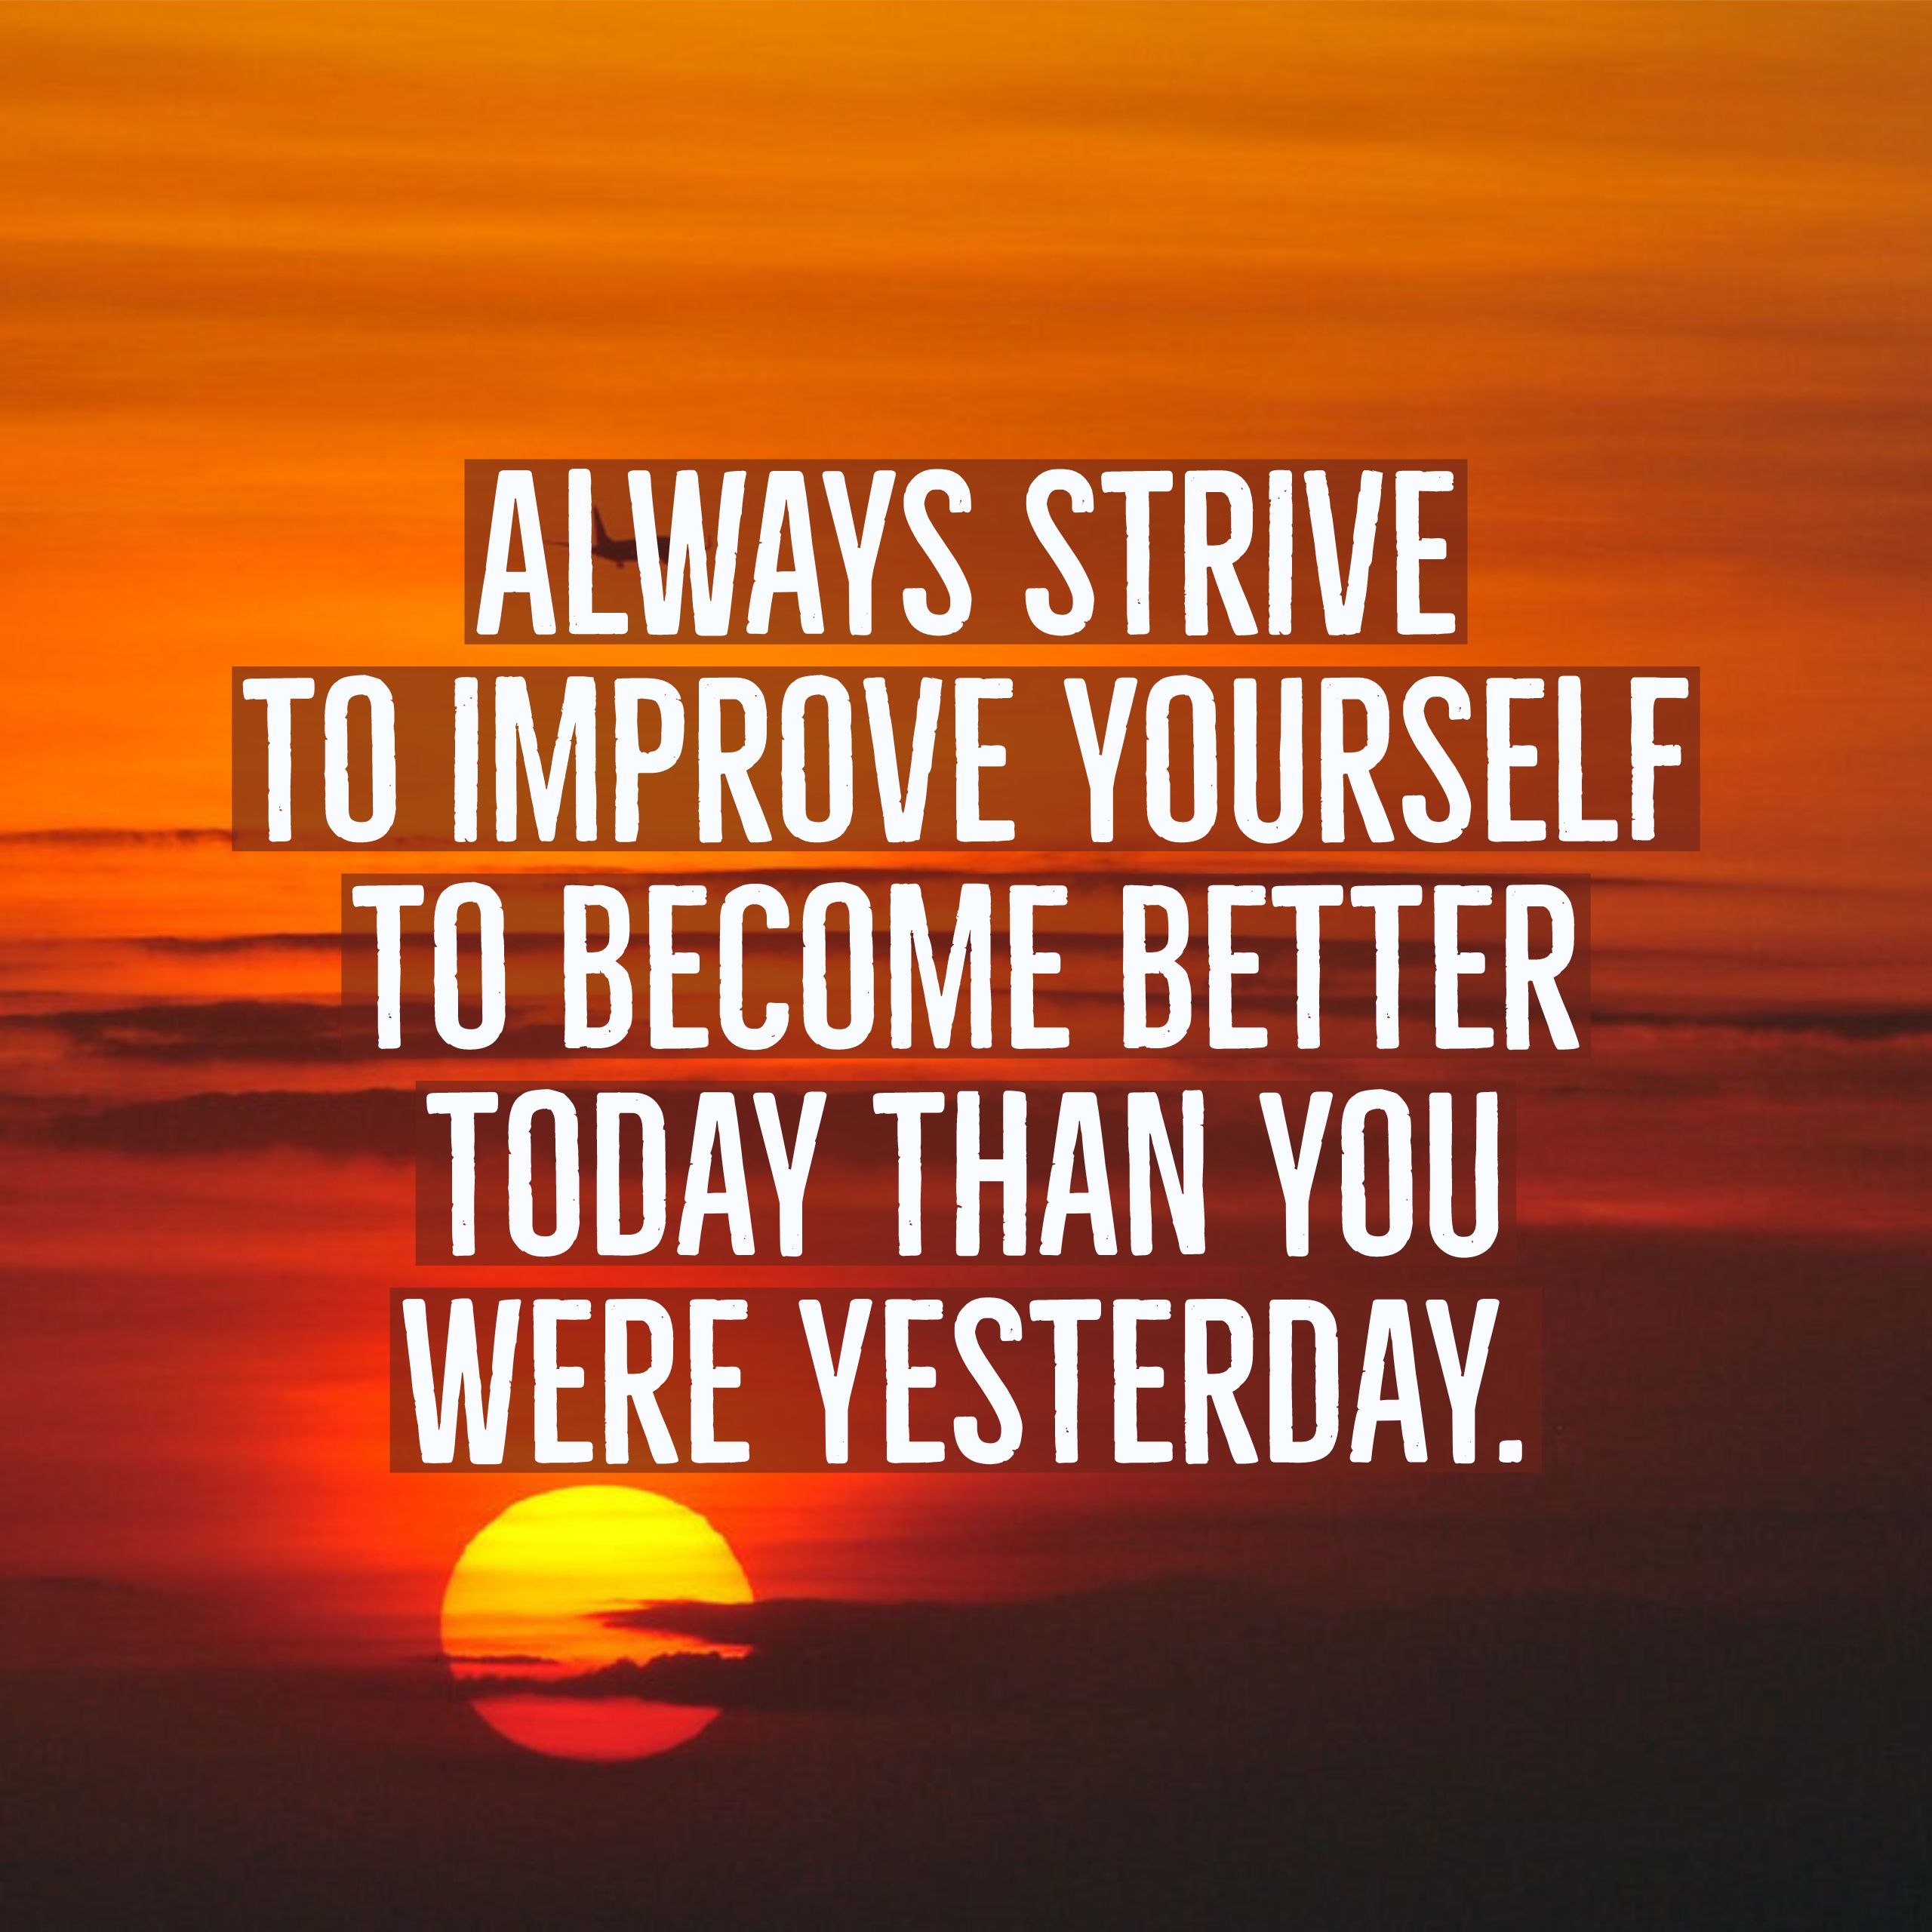 Always Strive To Improve Yourself To Become Better Today